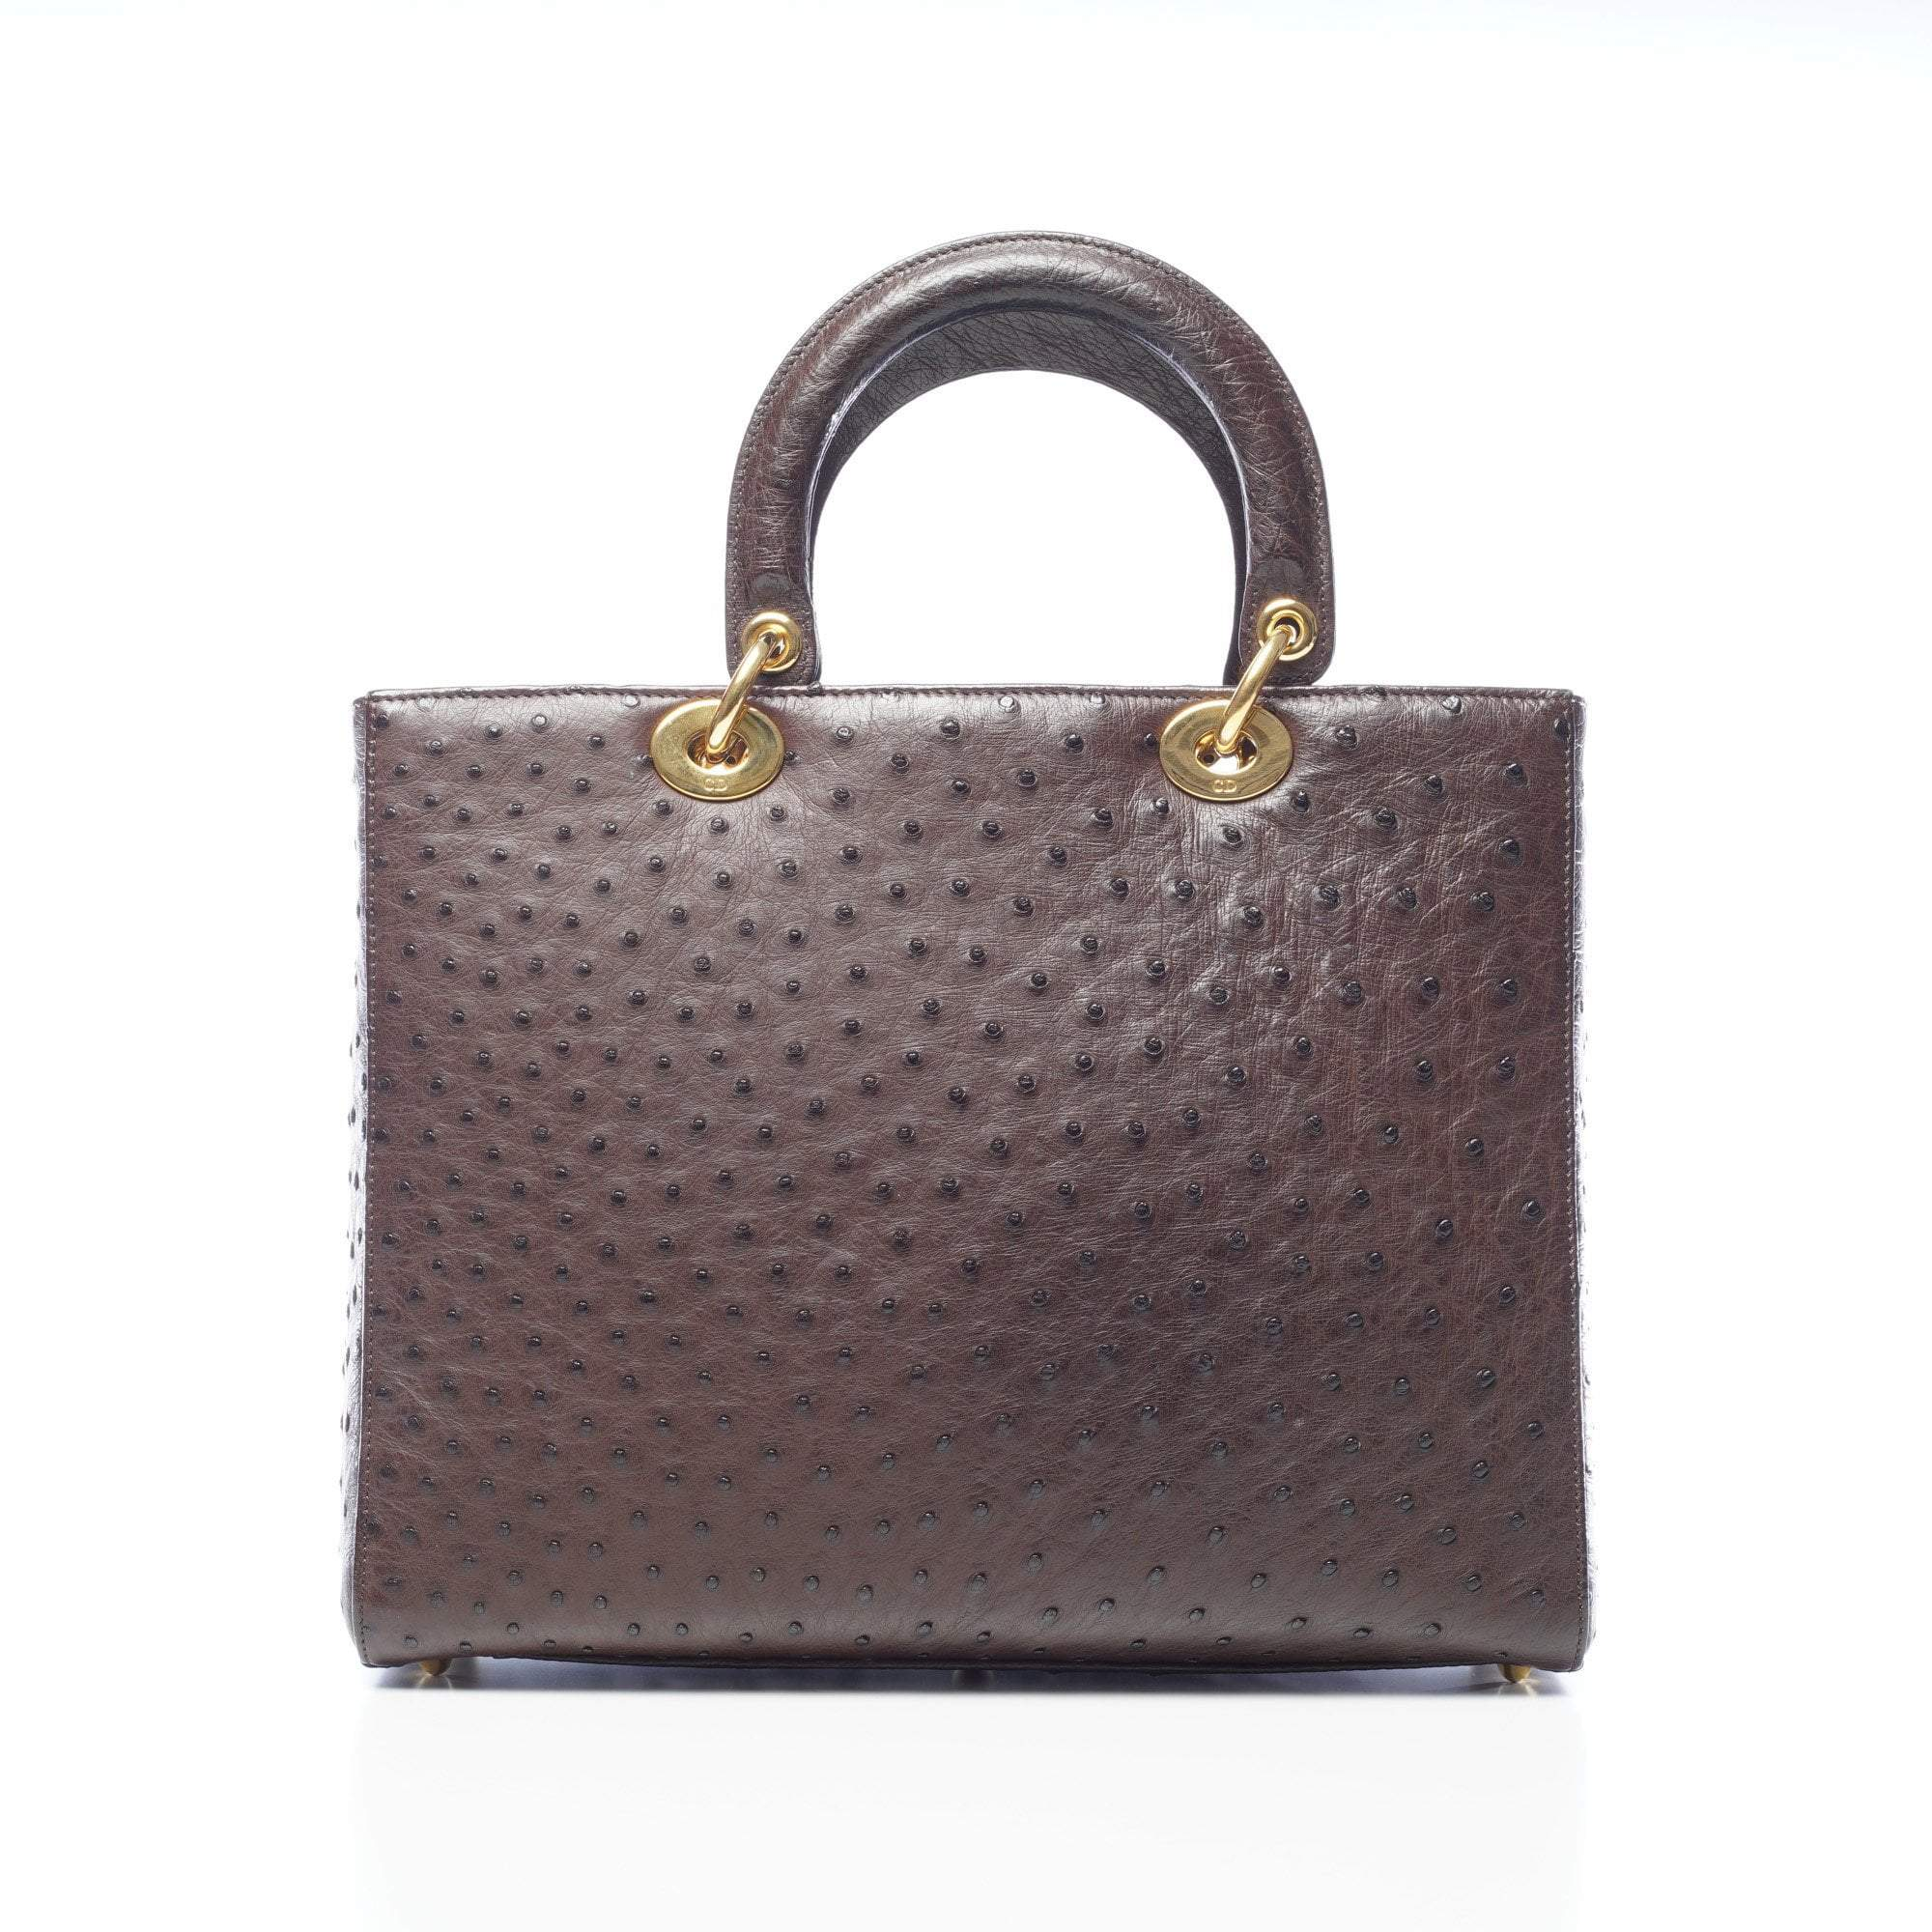 Dior Brown Ostrich Skin Large Lady Dior Tote